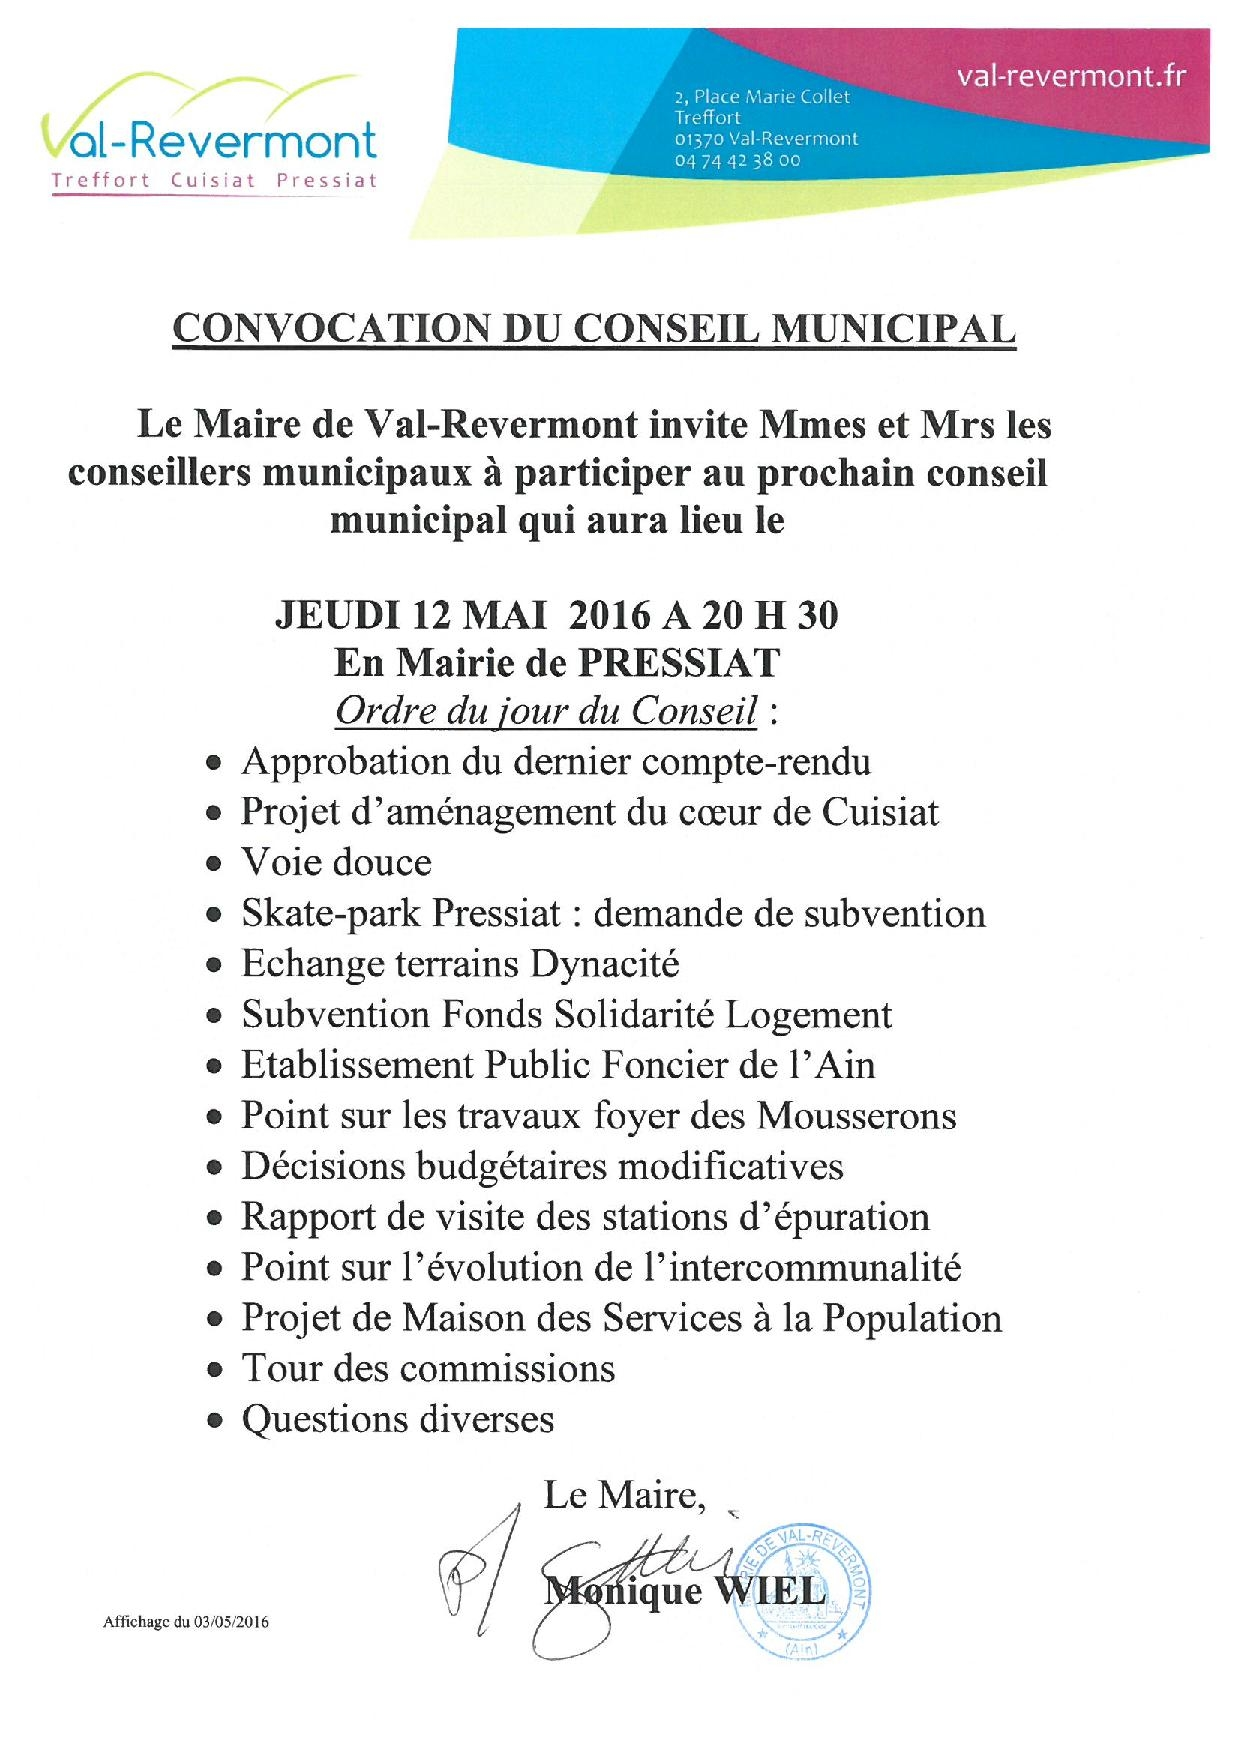 Convocation CM du 12 mai 2016